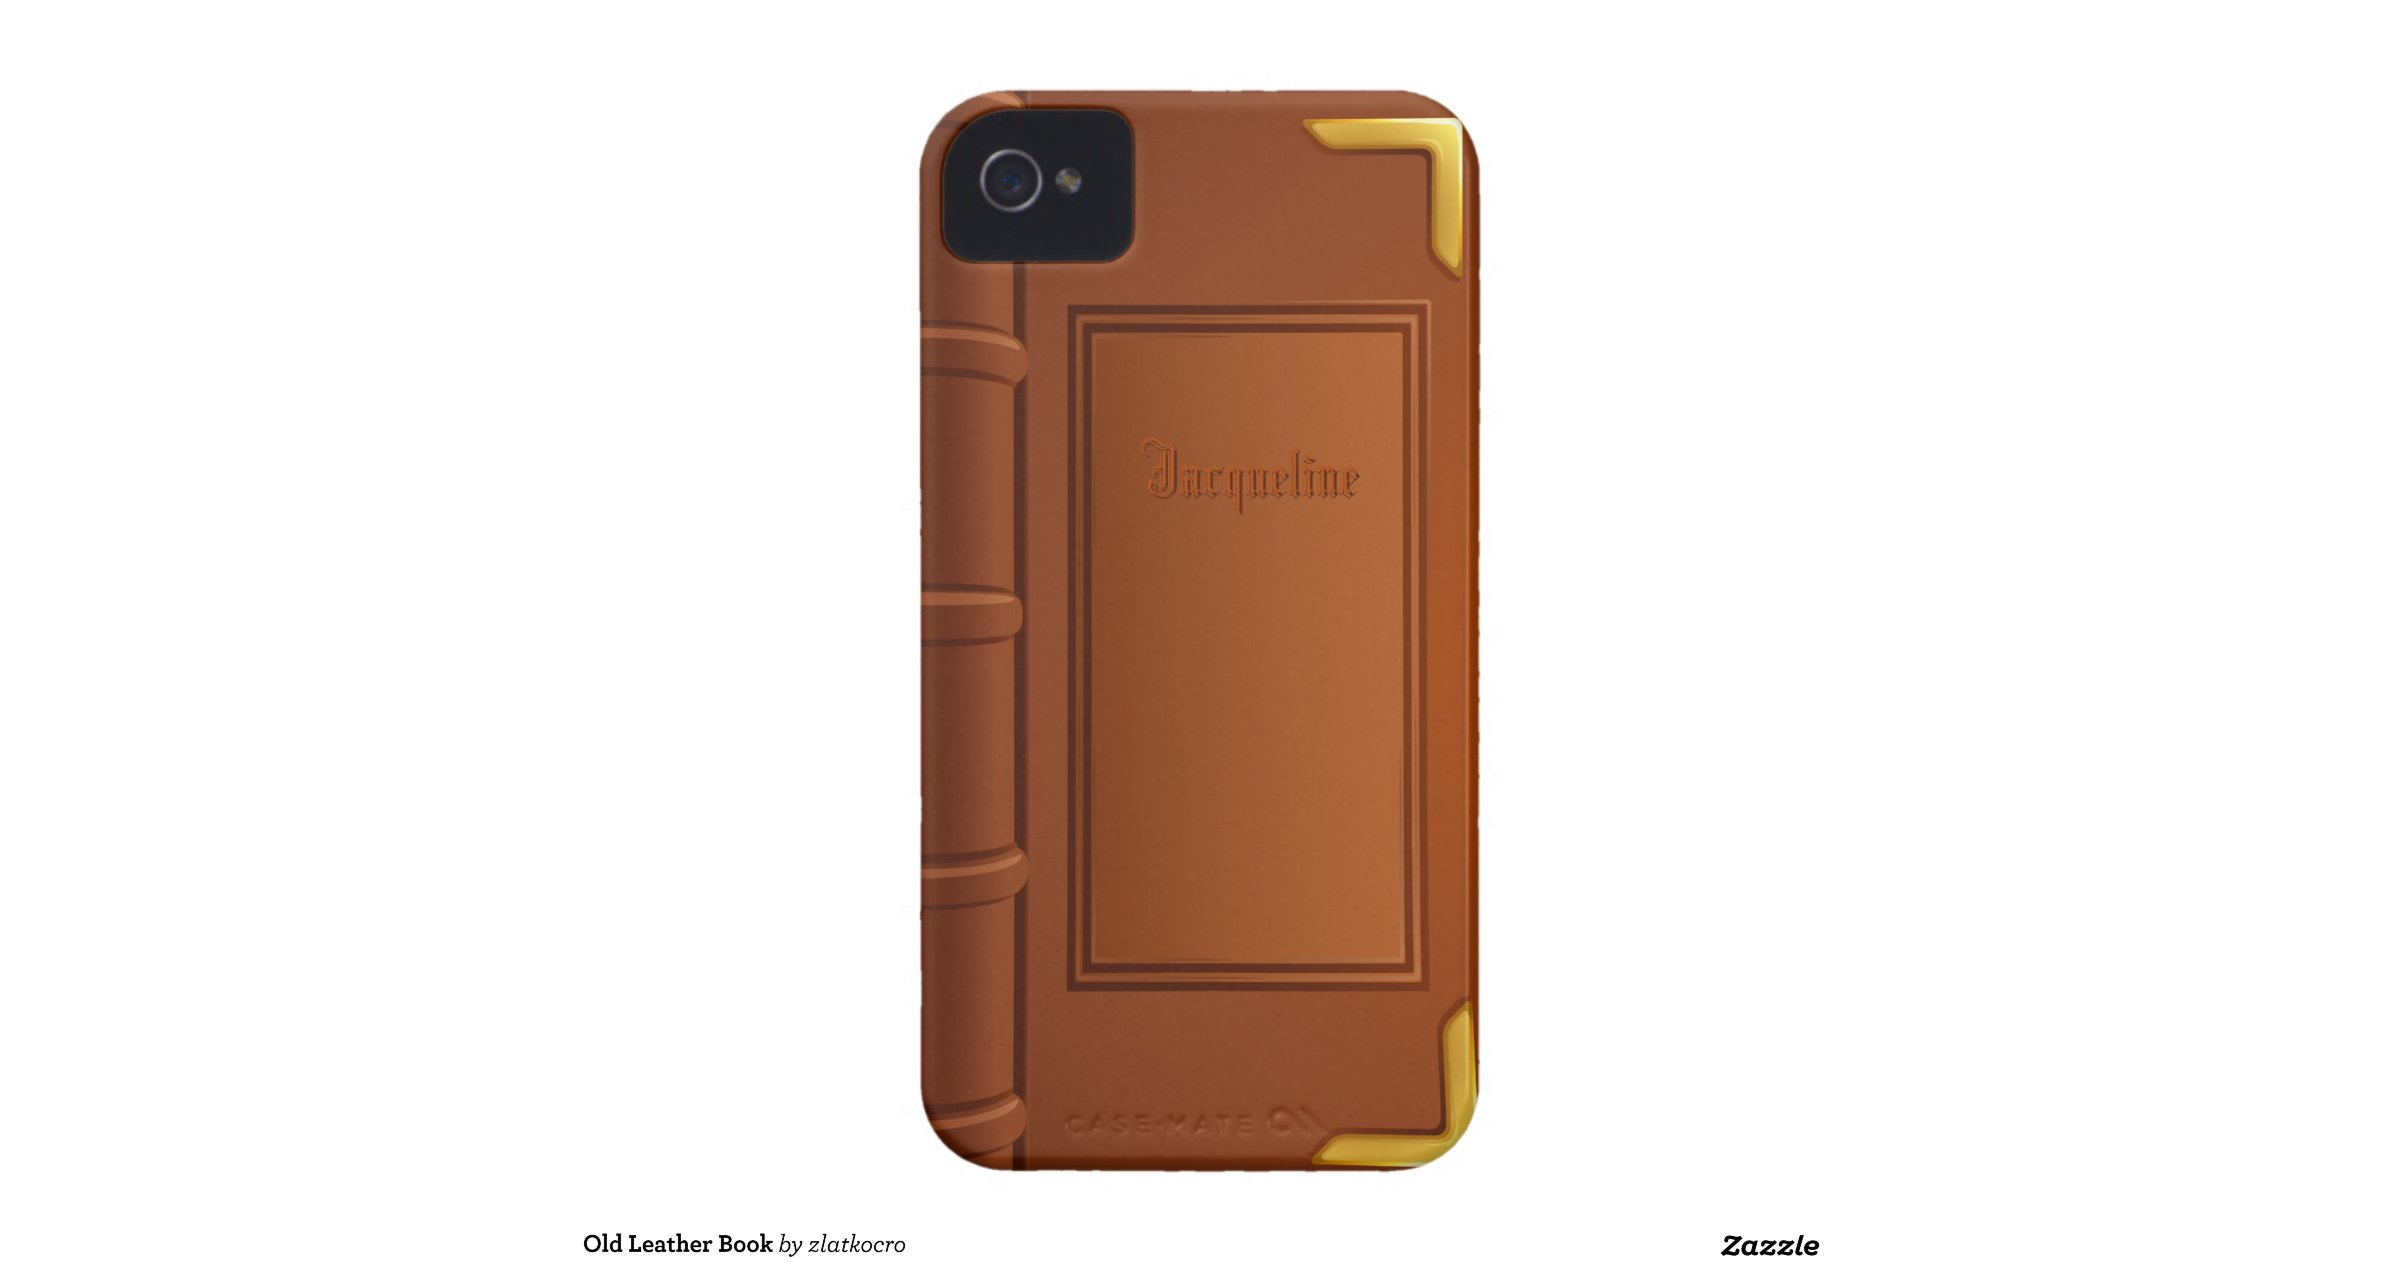 Old Leather Book Iphone Cover : Old leather book iphone covers zazzle